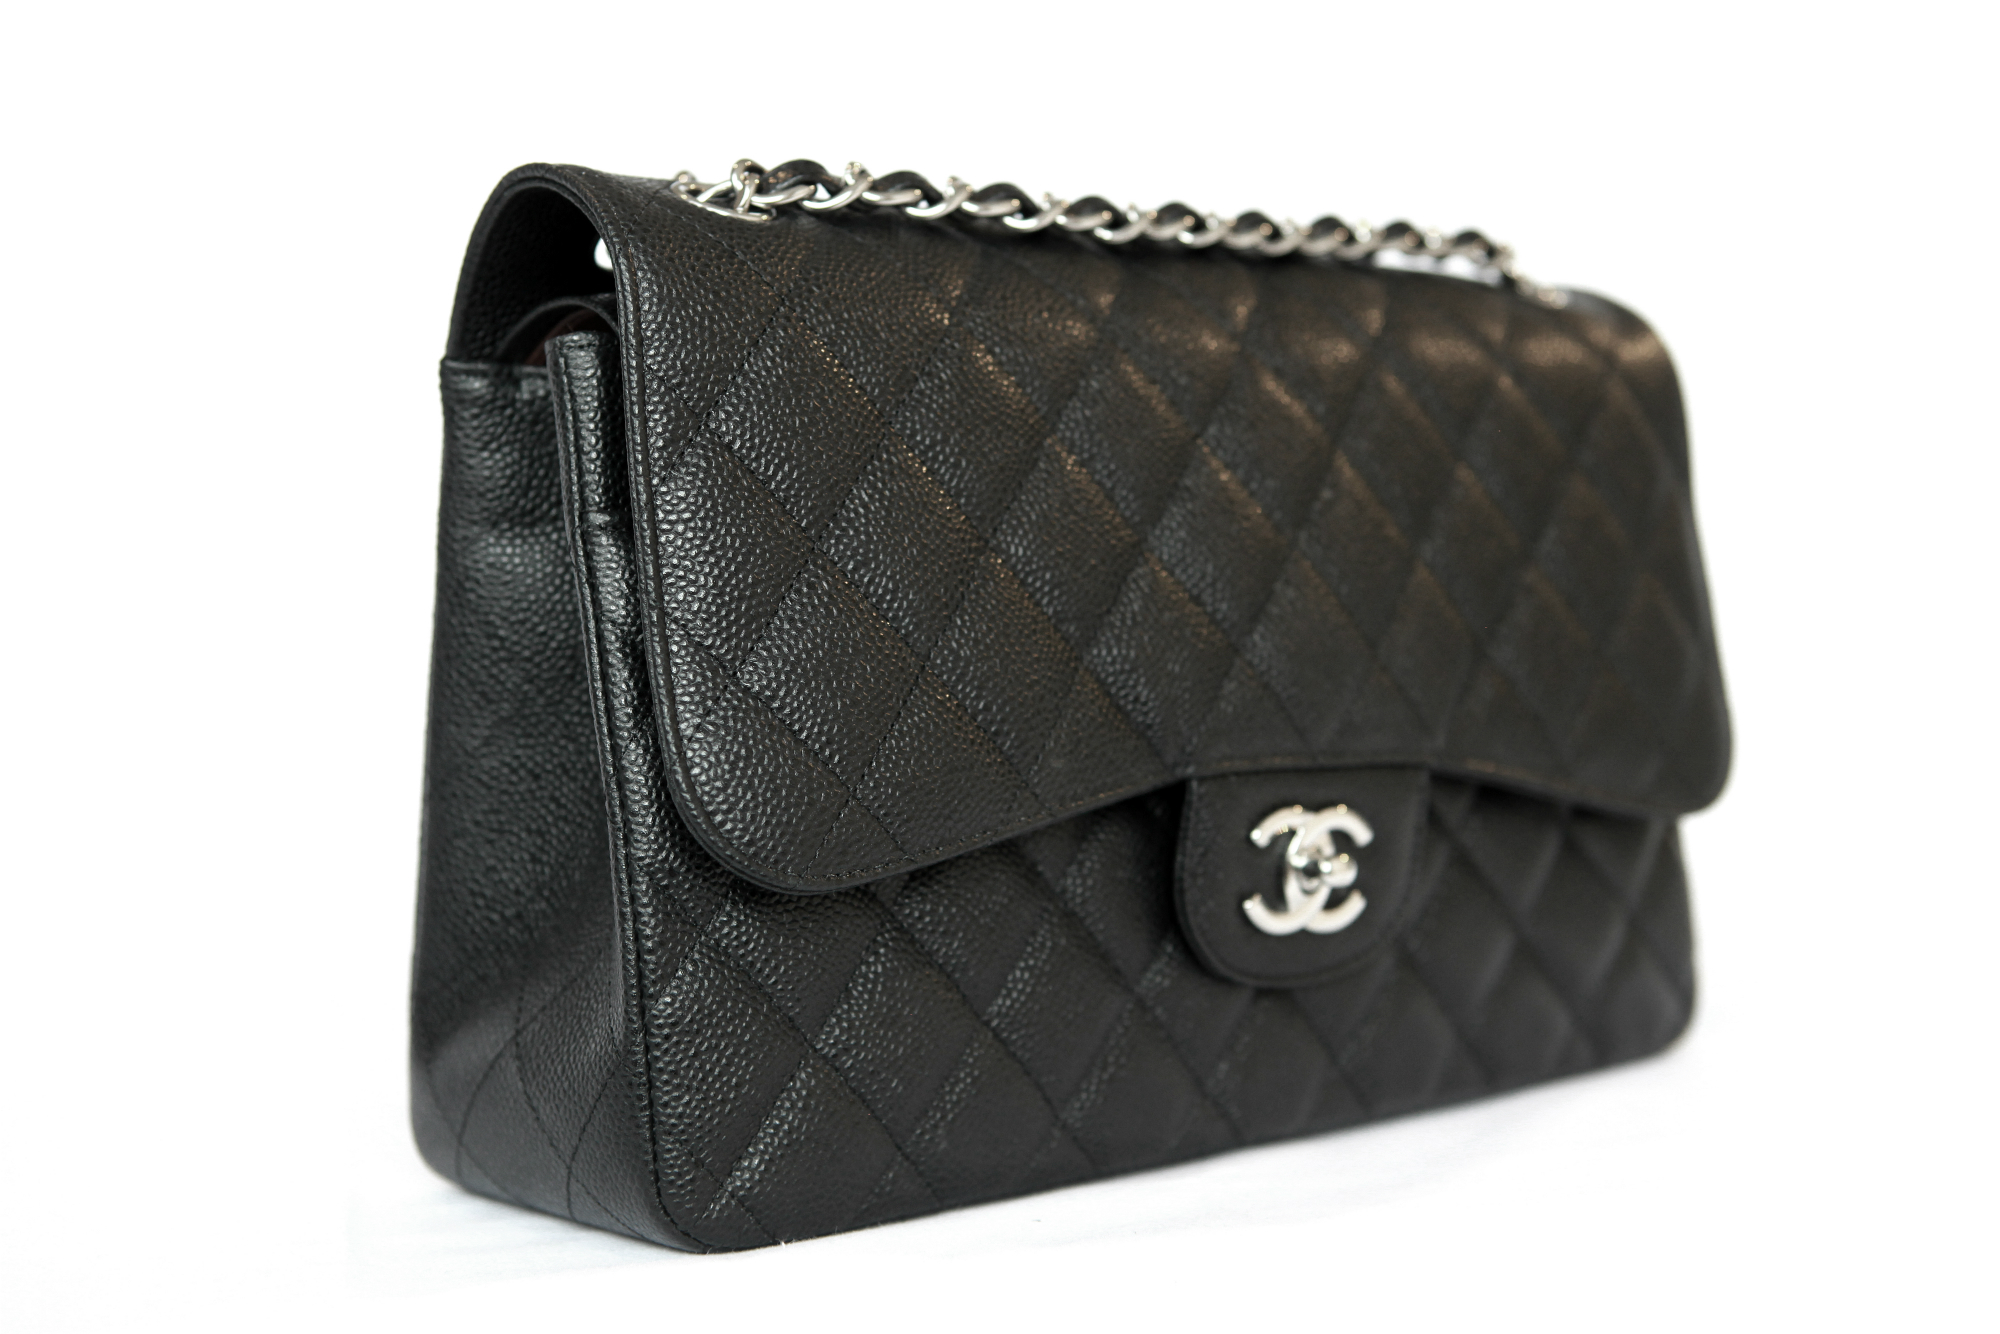 Hire a CHANEL Classic Flap Bag a Timeless handbag from Elite Couture 67c5e082e010